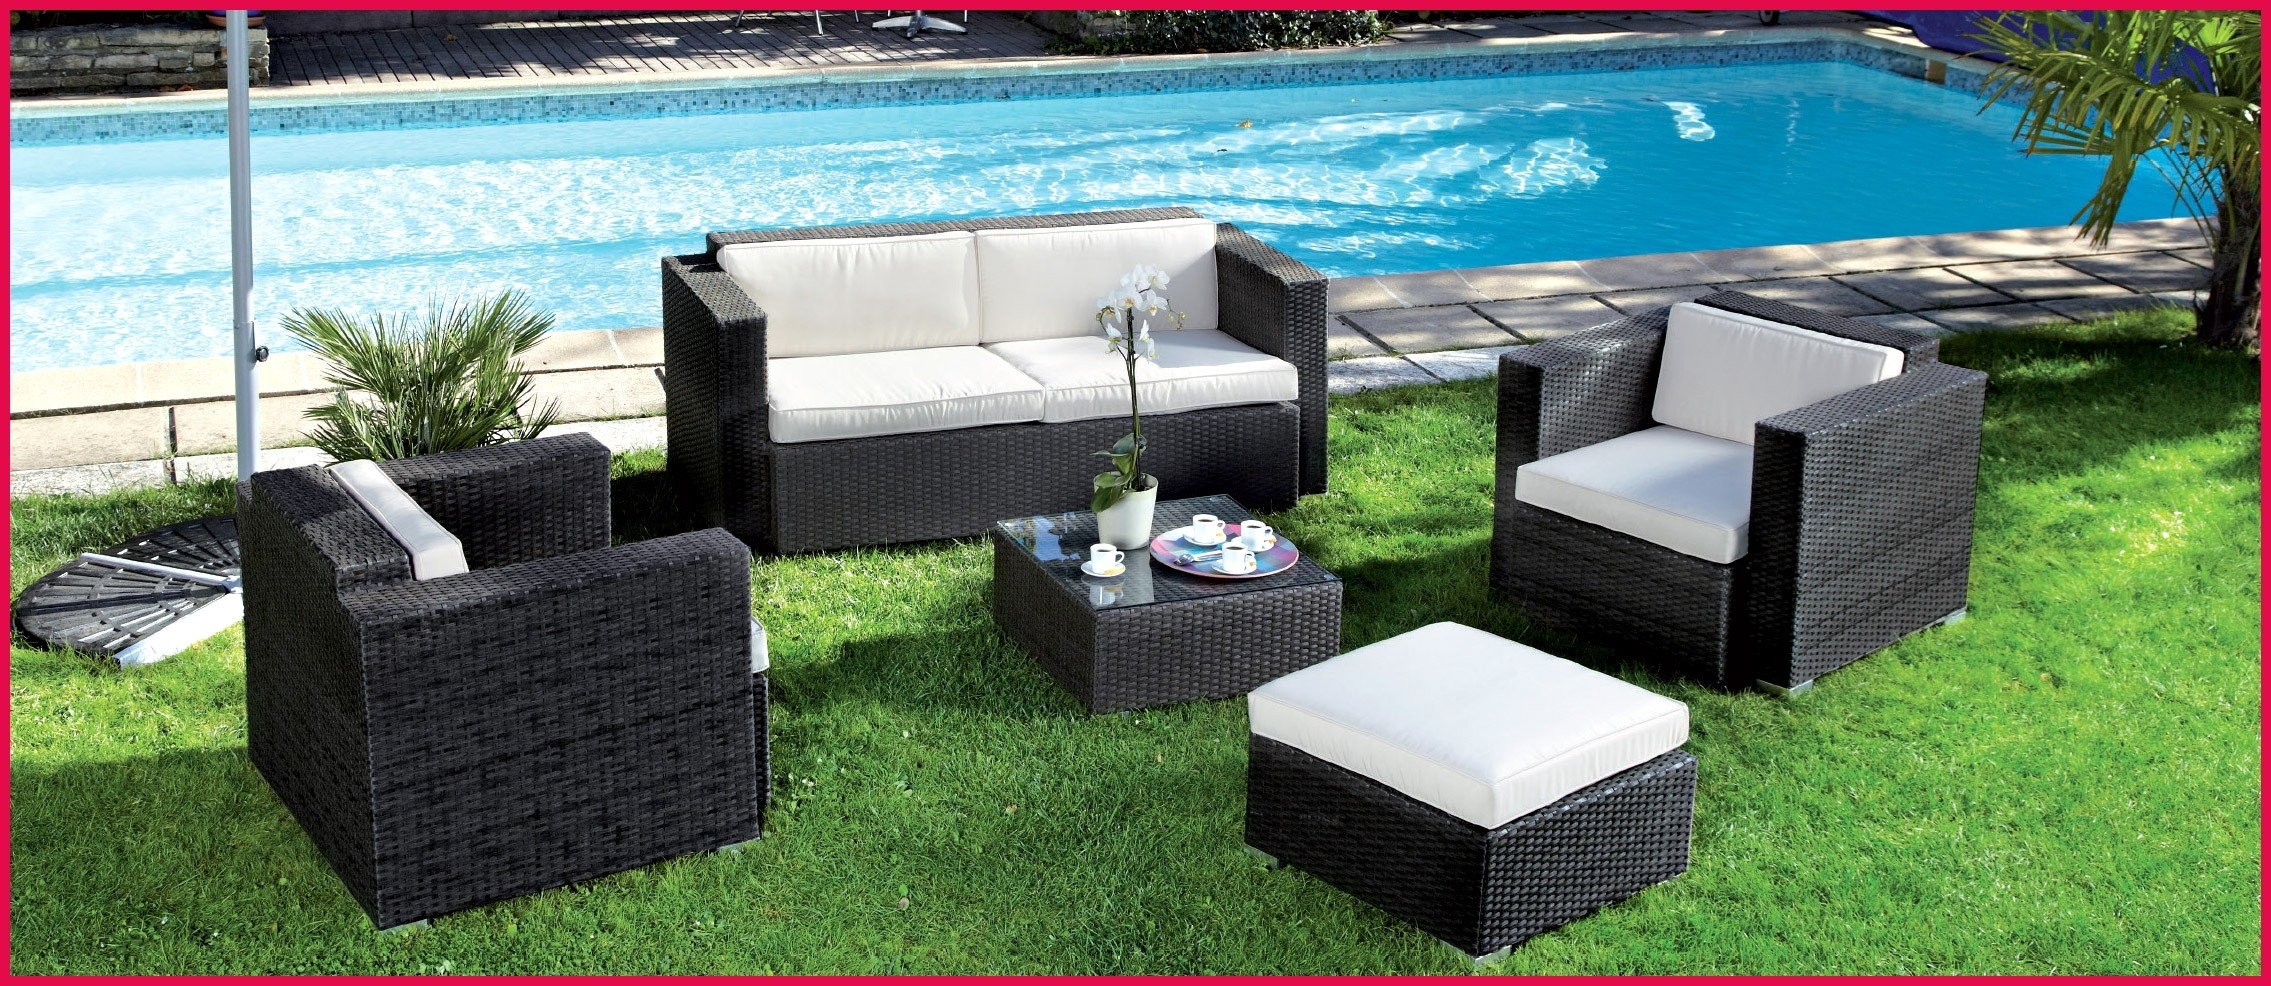 destockage salon de jardin id es de d coration. Black Bedroom Furniture Sets. Home Design Ideas